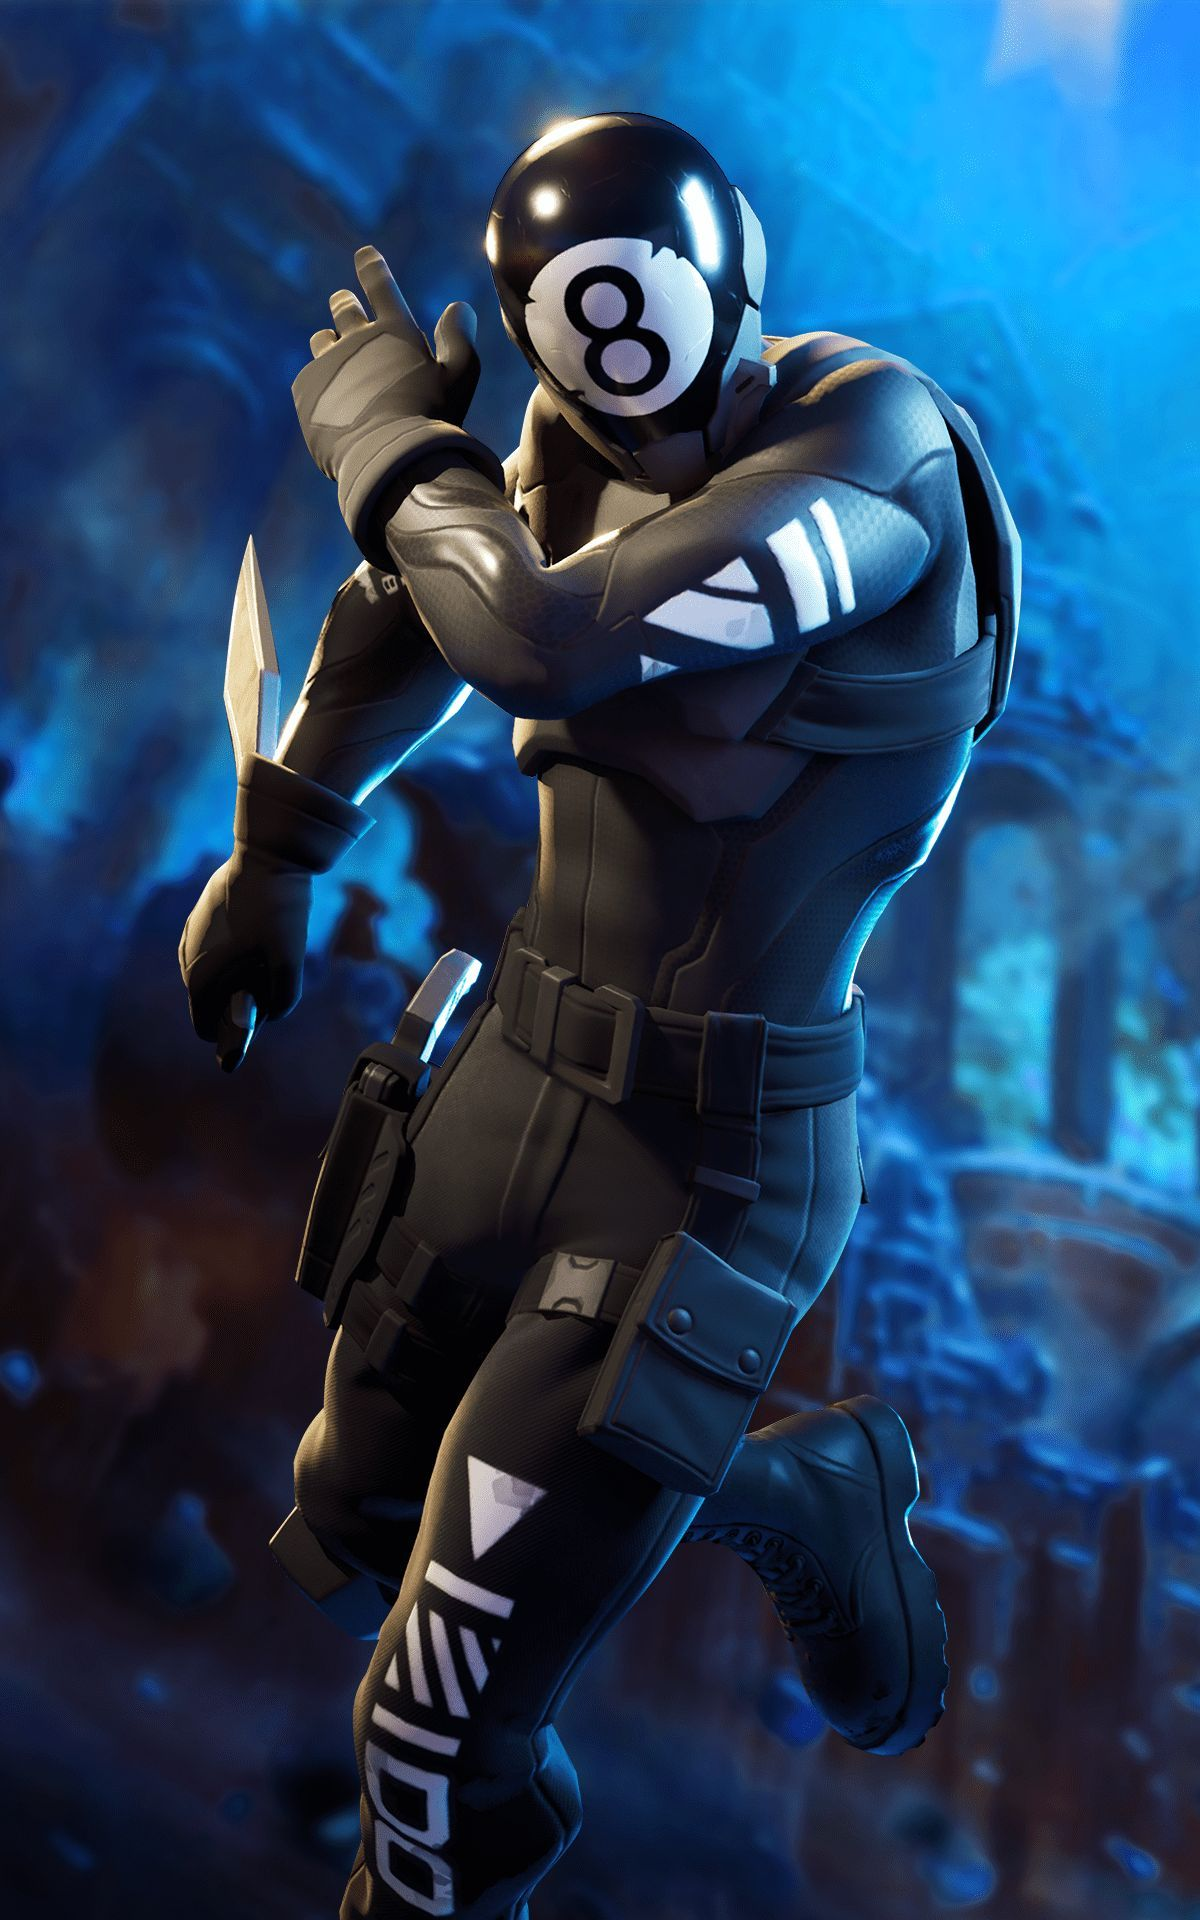 Fortnite wallpapers. Wallpaper and backgrounds for battle ...